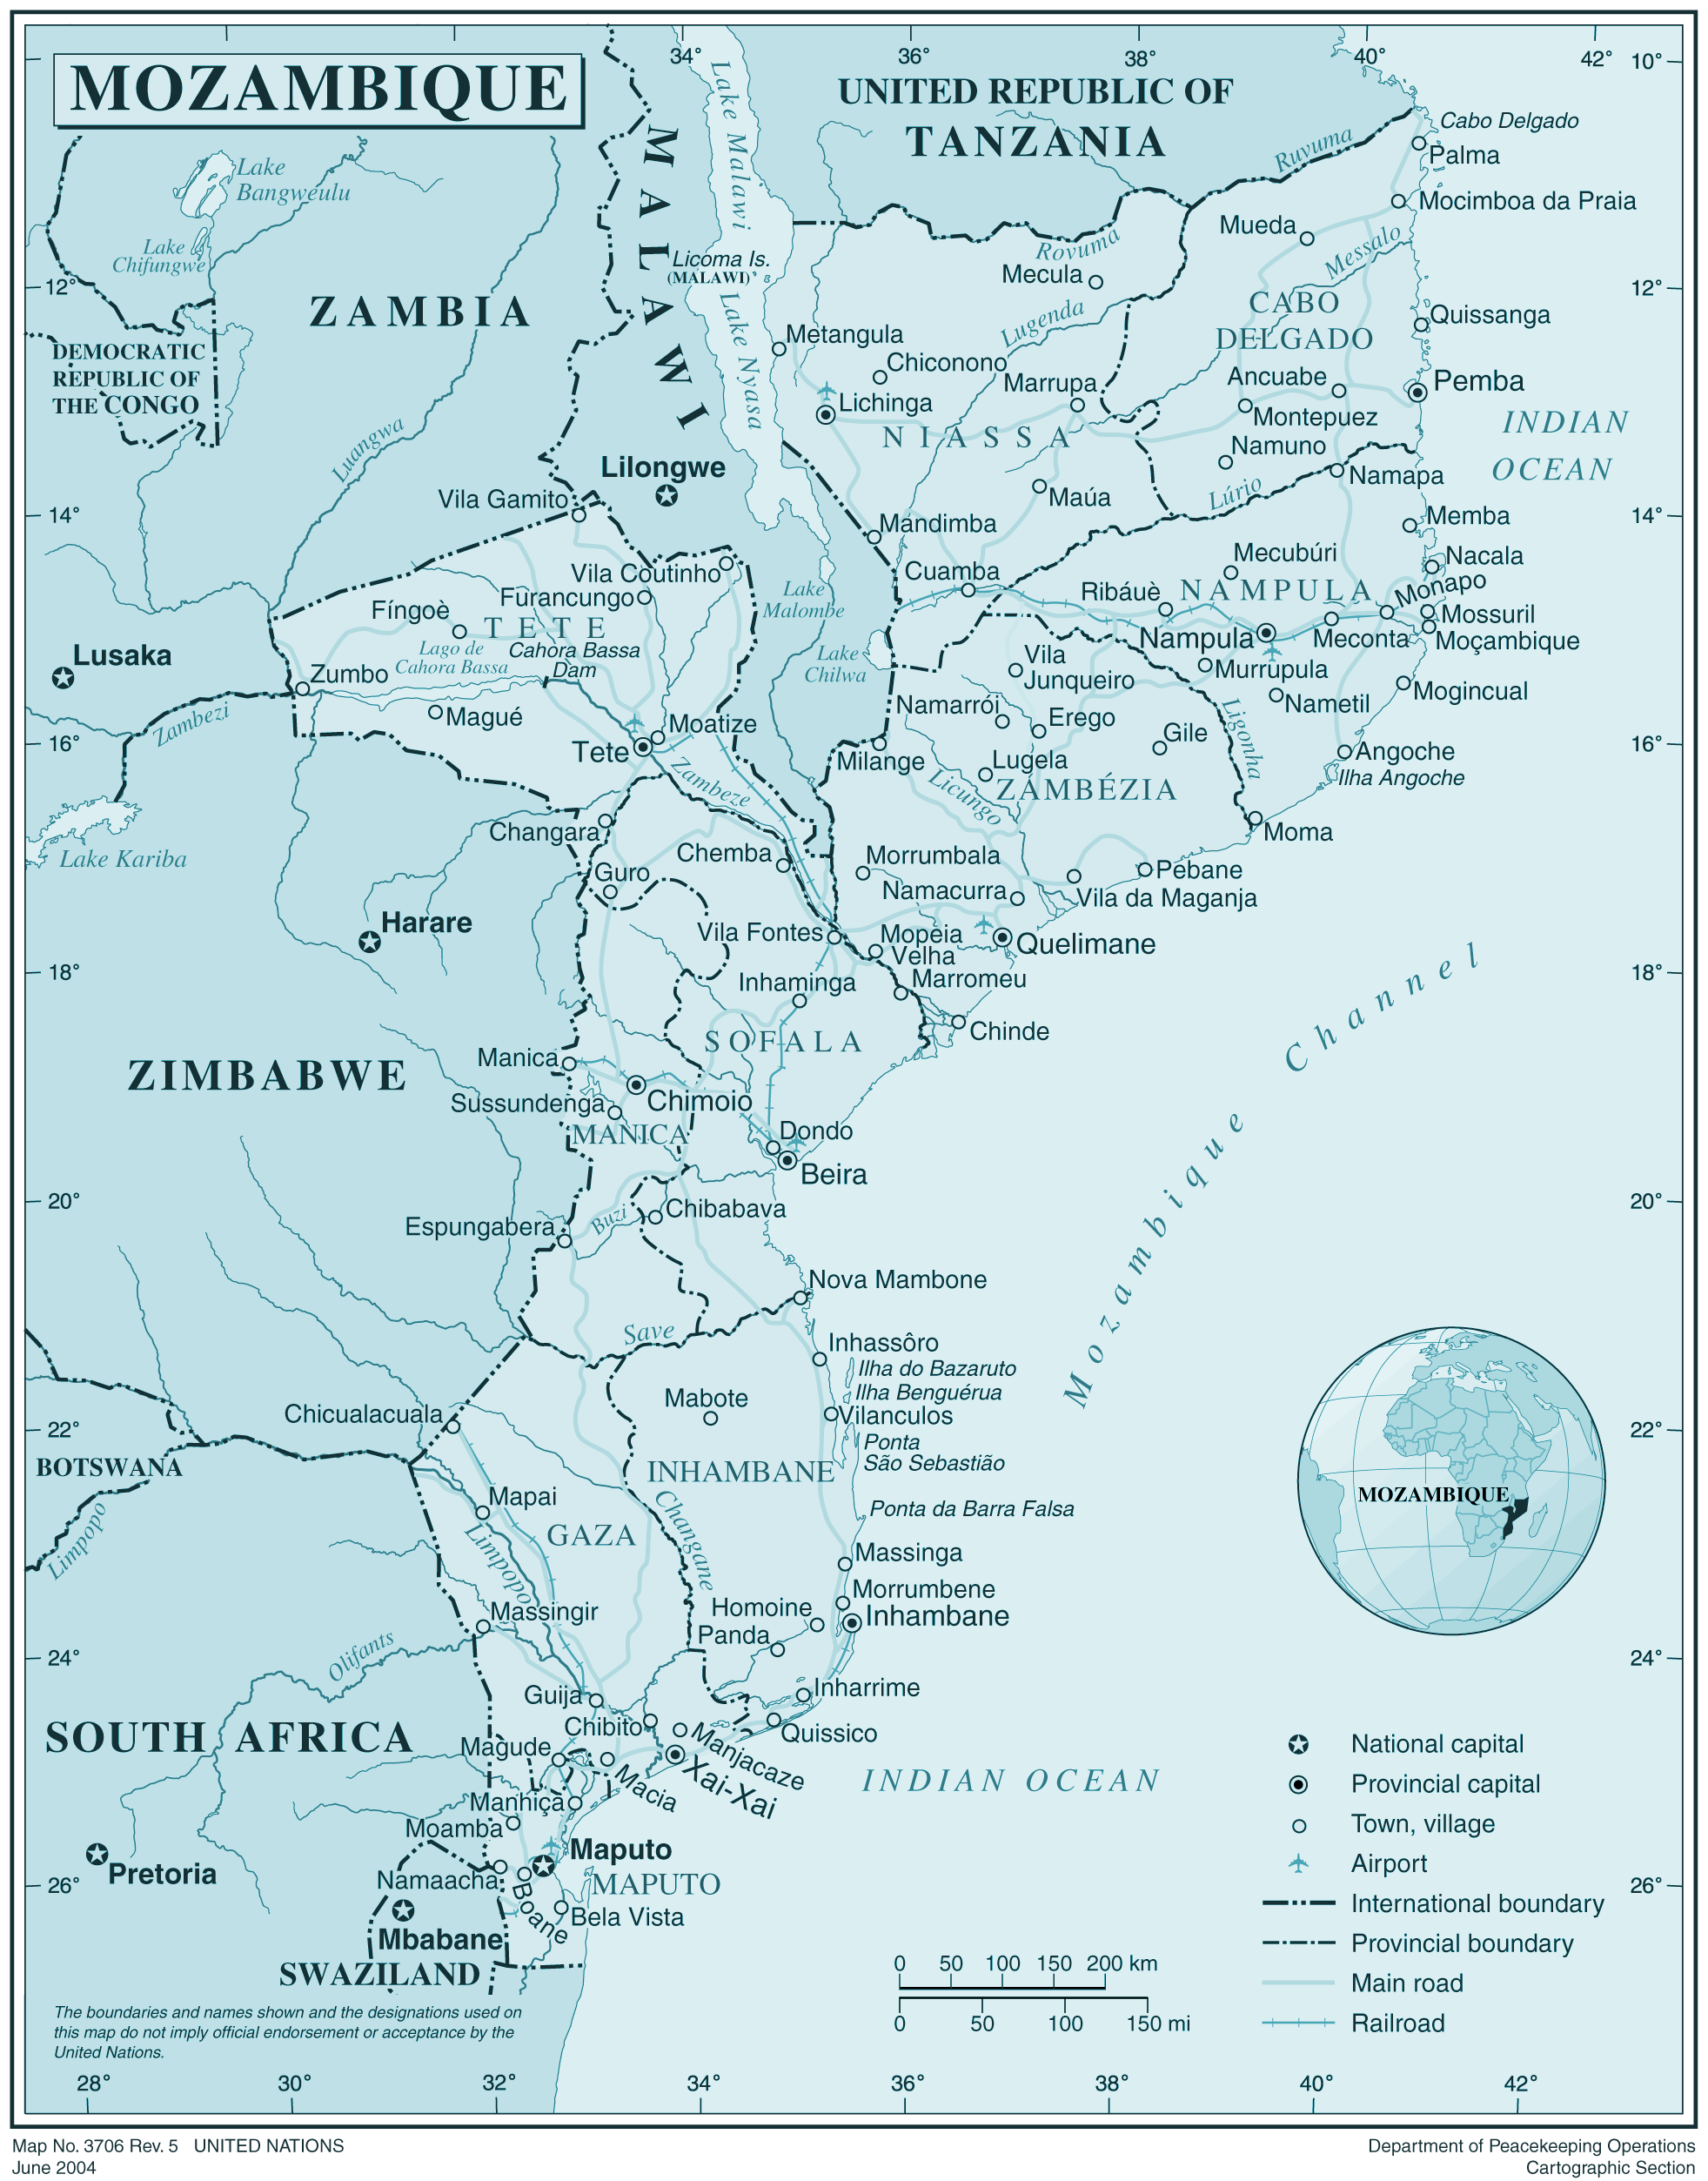 Mozambique large map